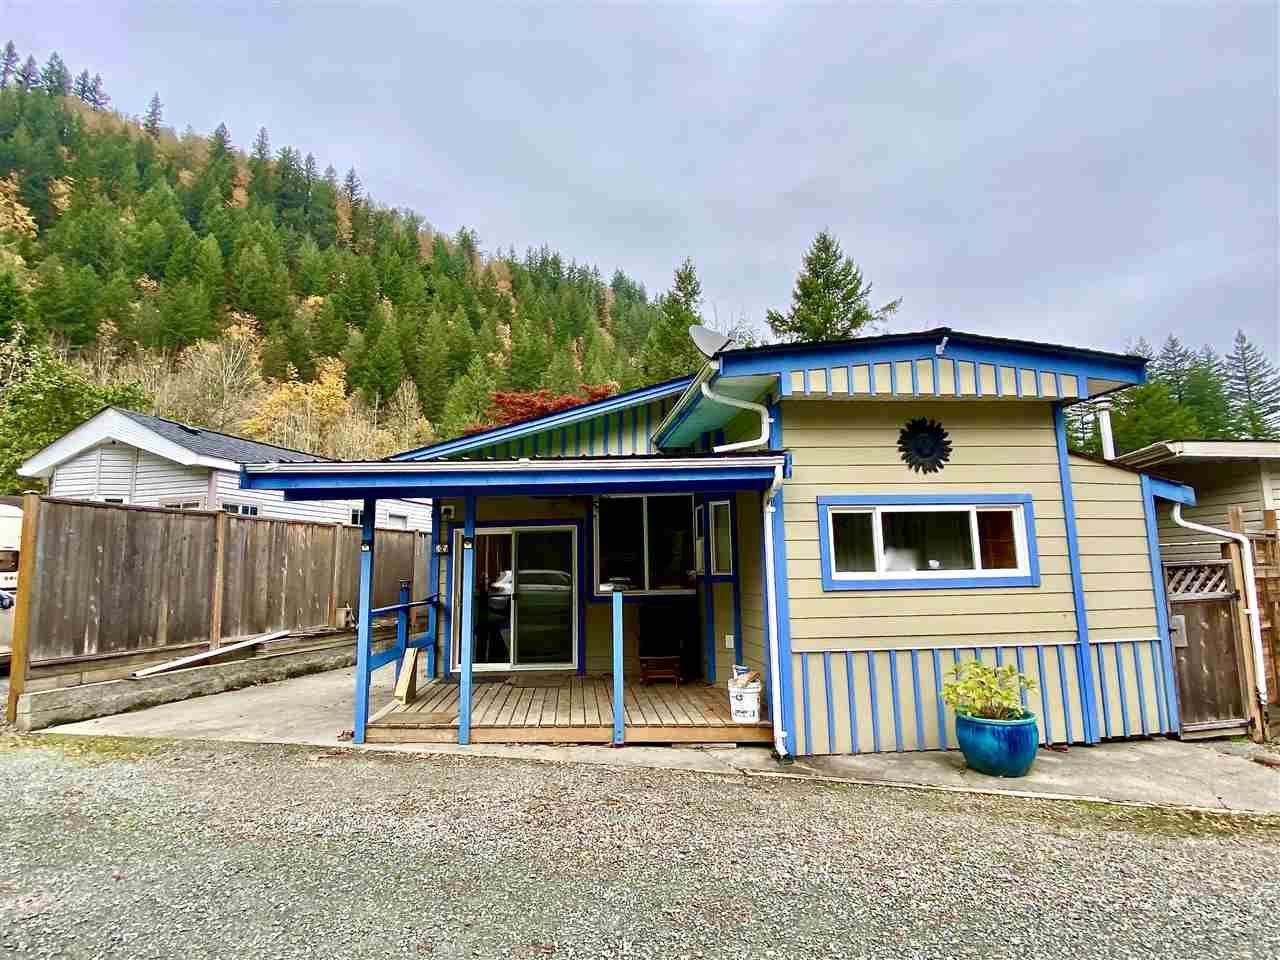 """Main Photo: 35 1650 COLUMBIA VALLEY Road: Columbia Valley Land for sale in """"LEISURE VALLEY"""" (Cultus Lake)  : MLS®# R2513453"""